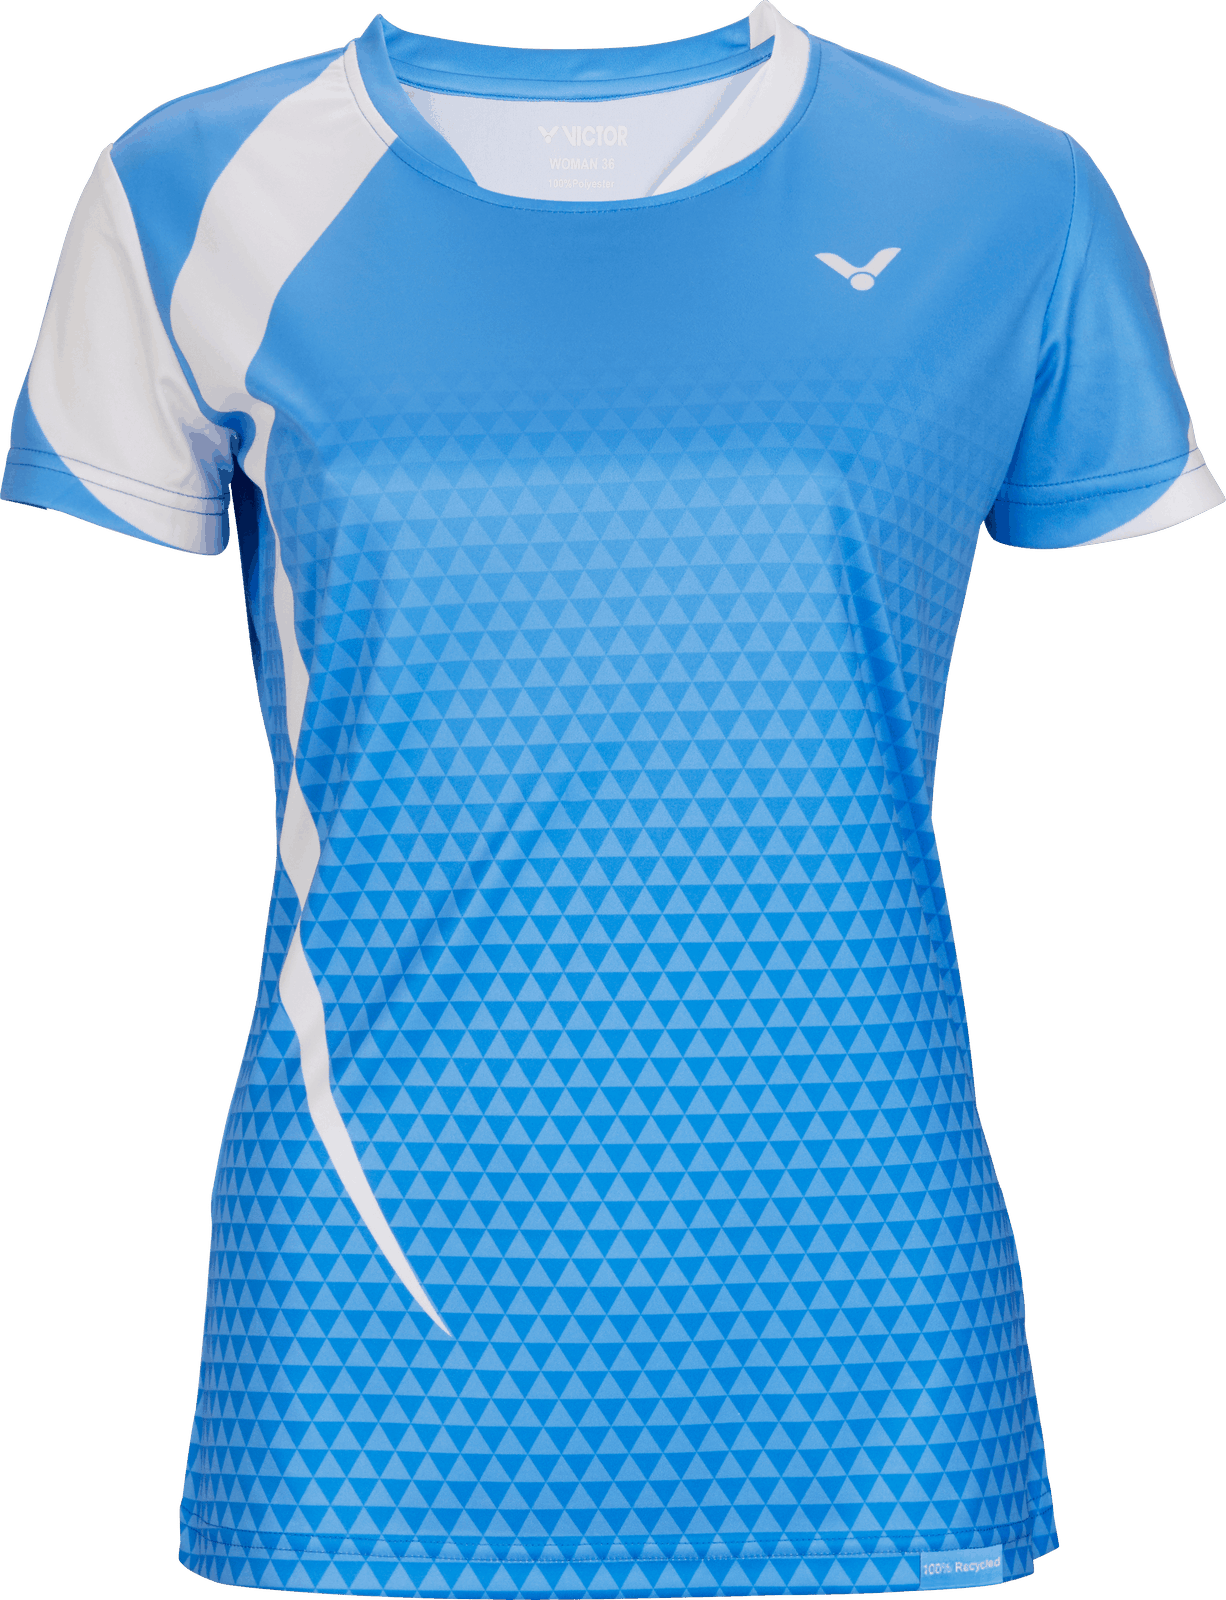 VICTOR Eco Series T-Shirt T-04102 M